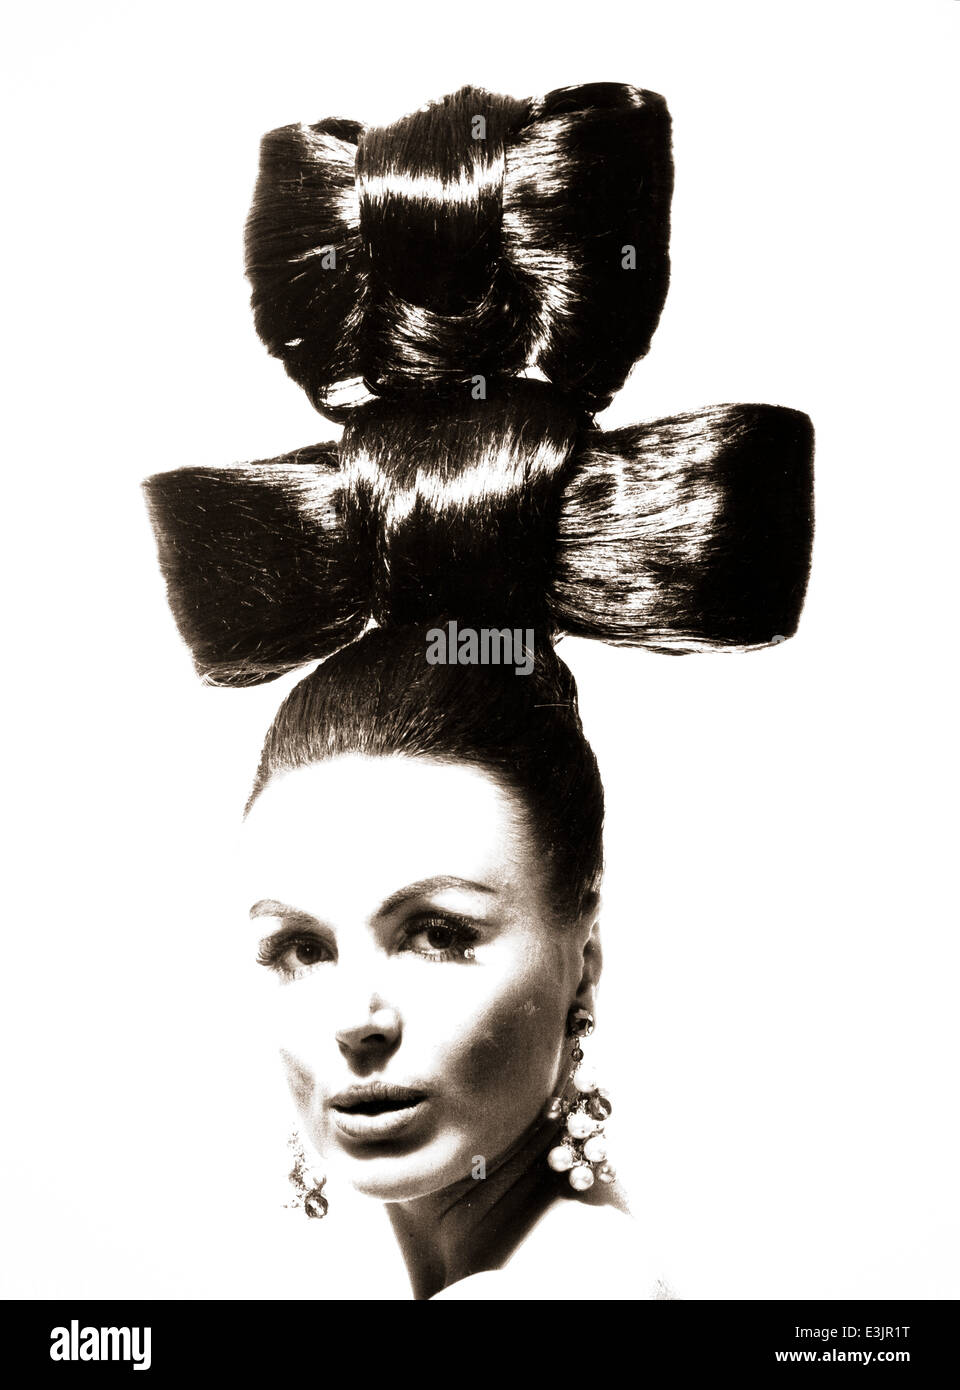 1960s Hairstyles Stock Photos & 1960s Hairstyles Stock Images - Alamy